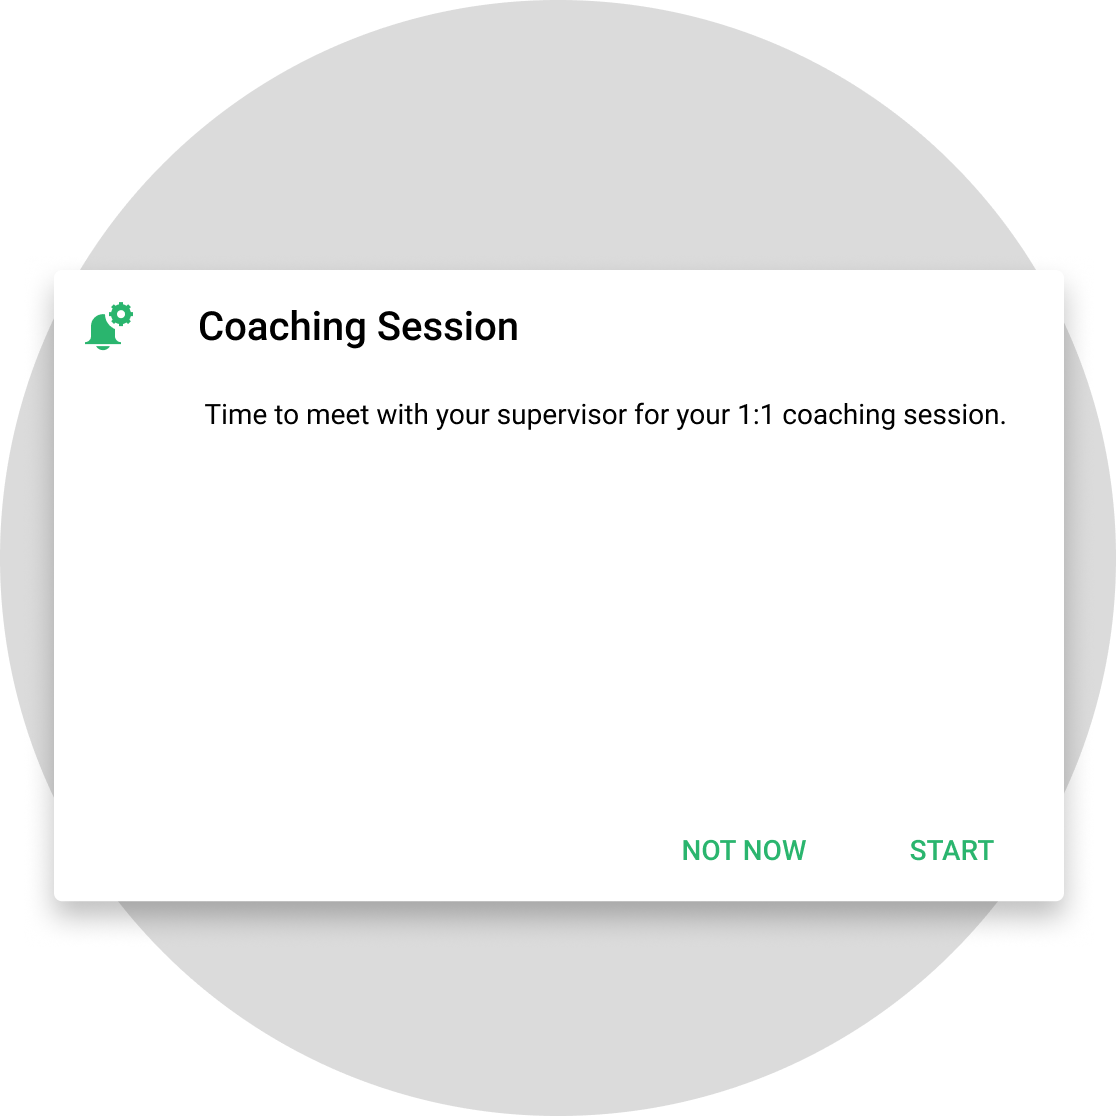 Coaching Session notification example